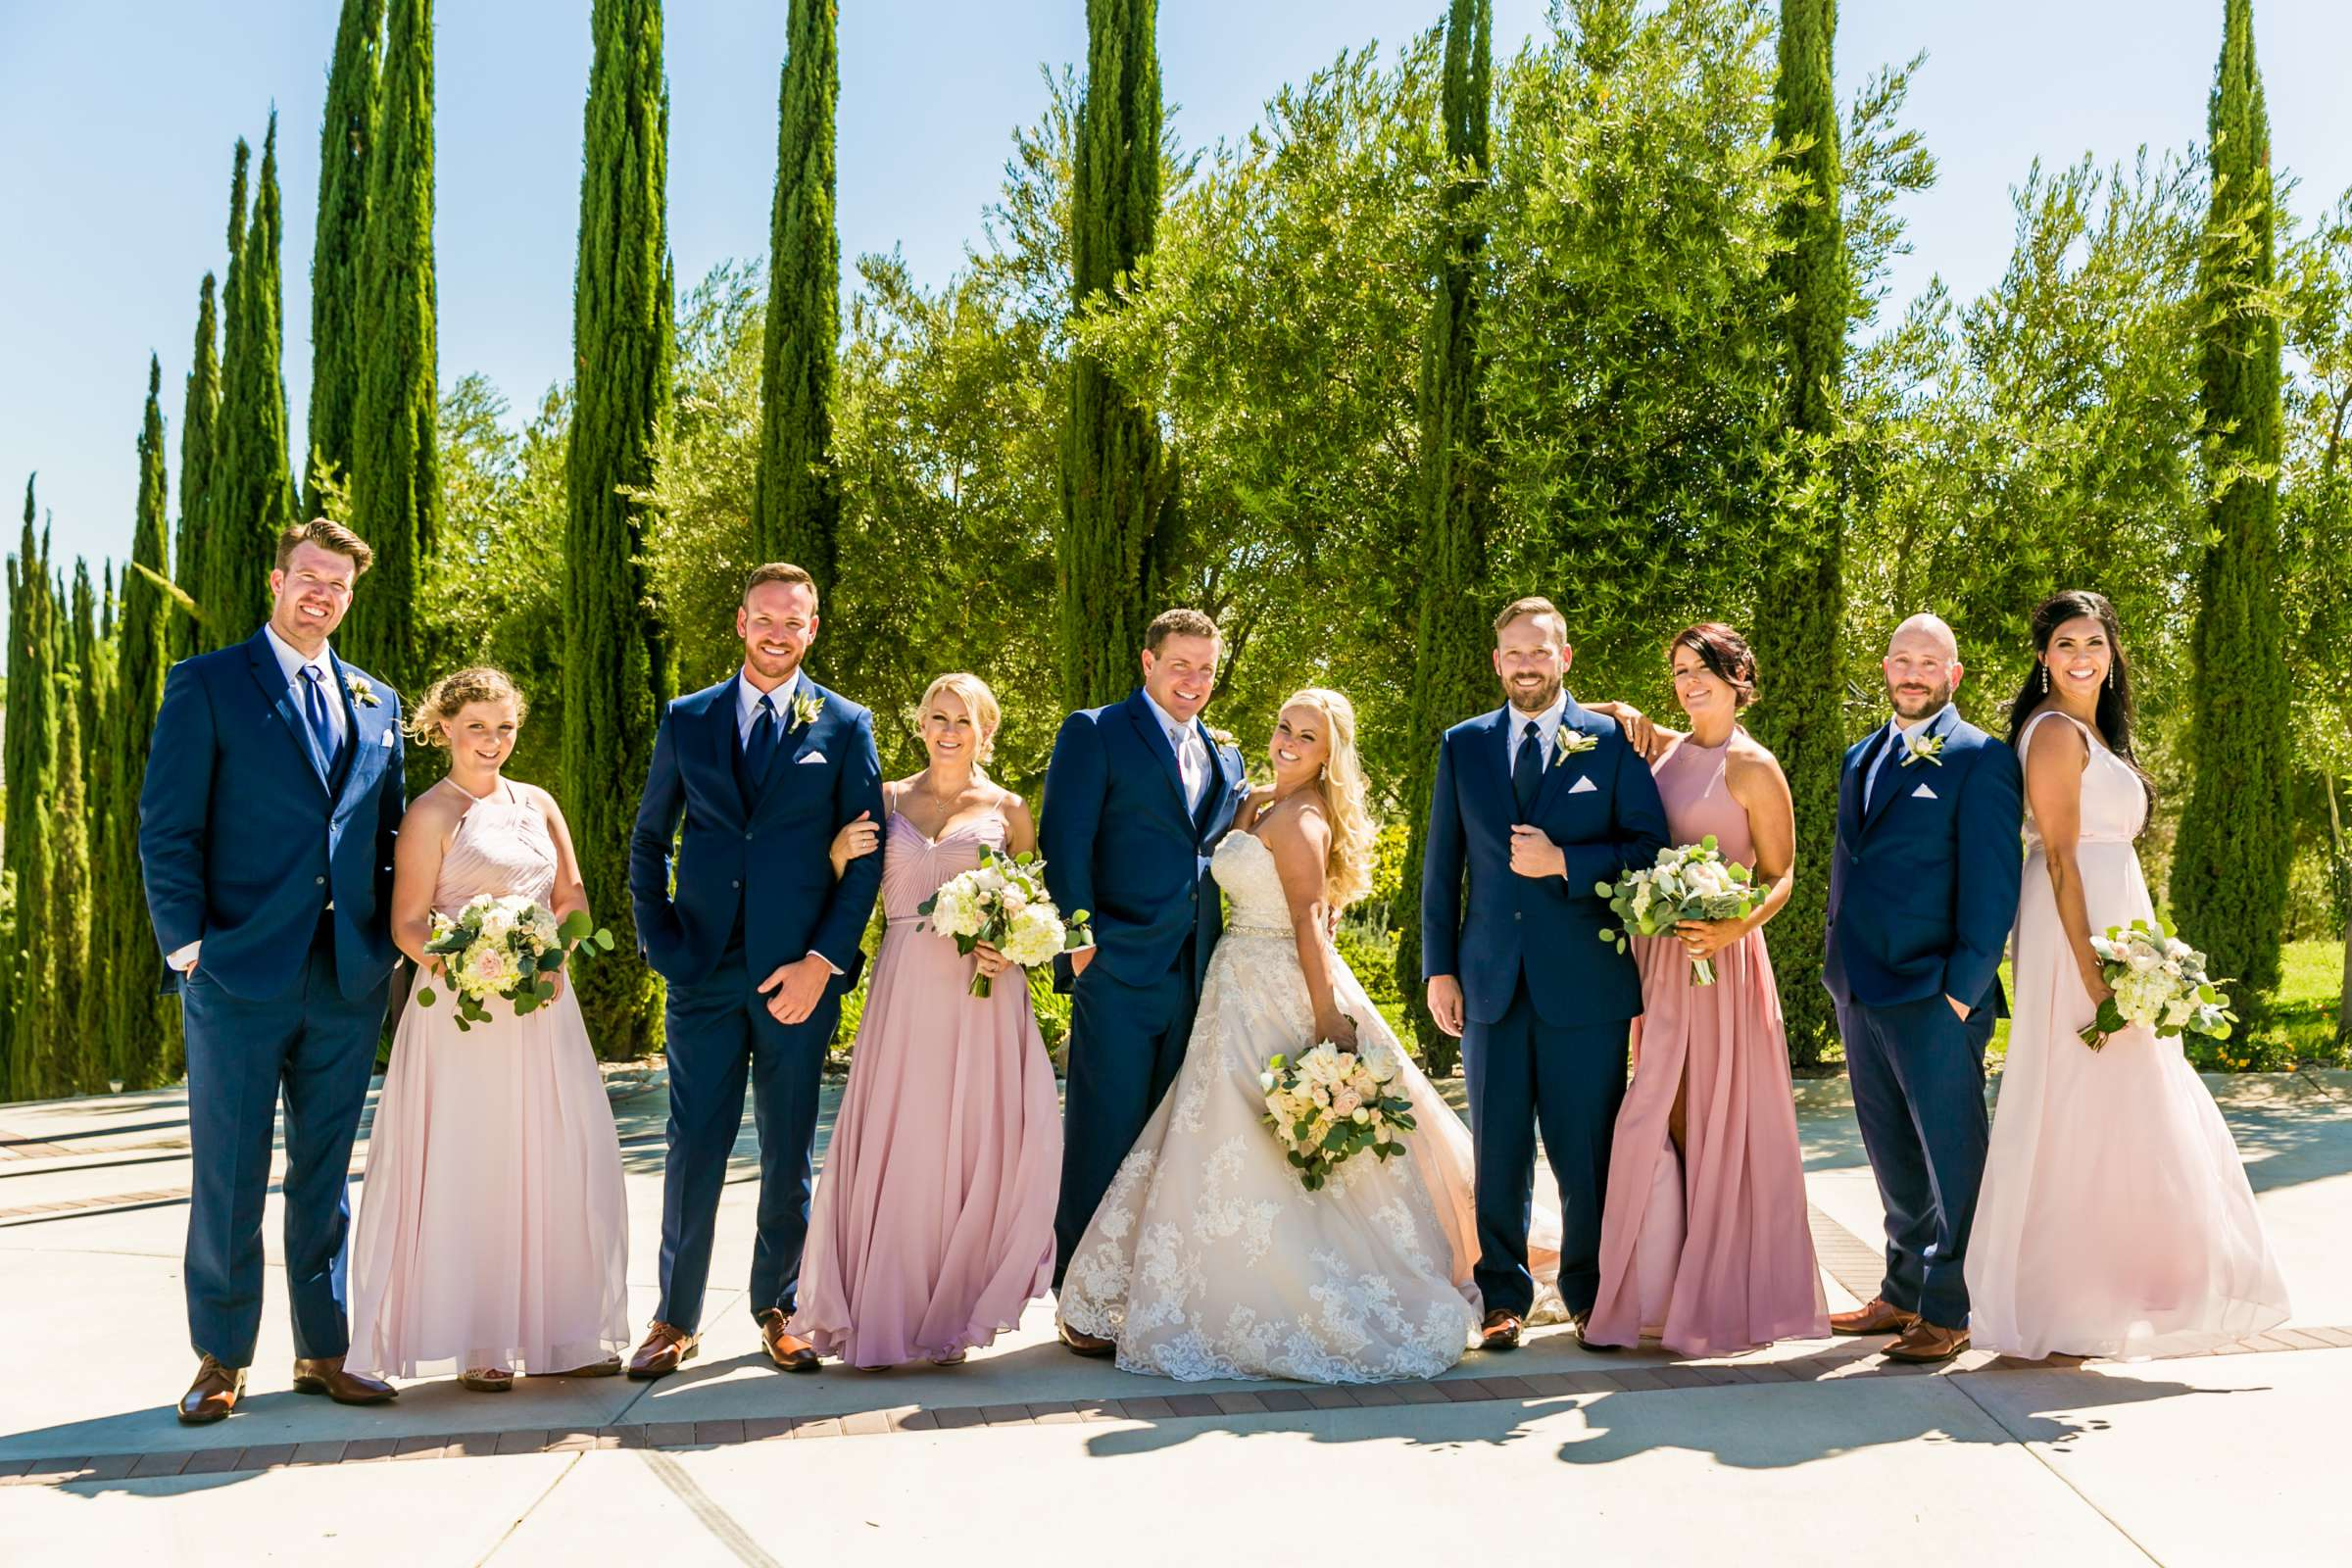 Bridal Party at Mount Palomar Winery Wedding, Meg and Eric Wedding Photo #477448 by True Photography